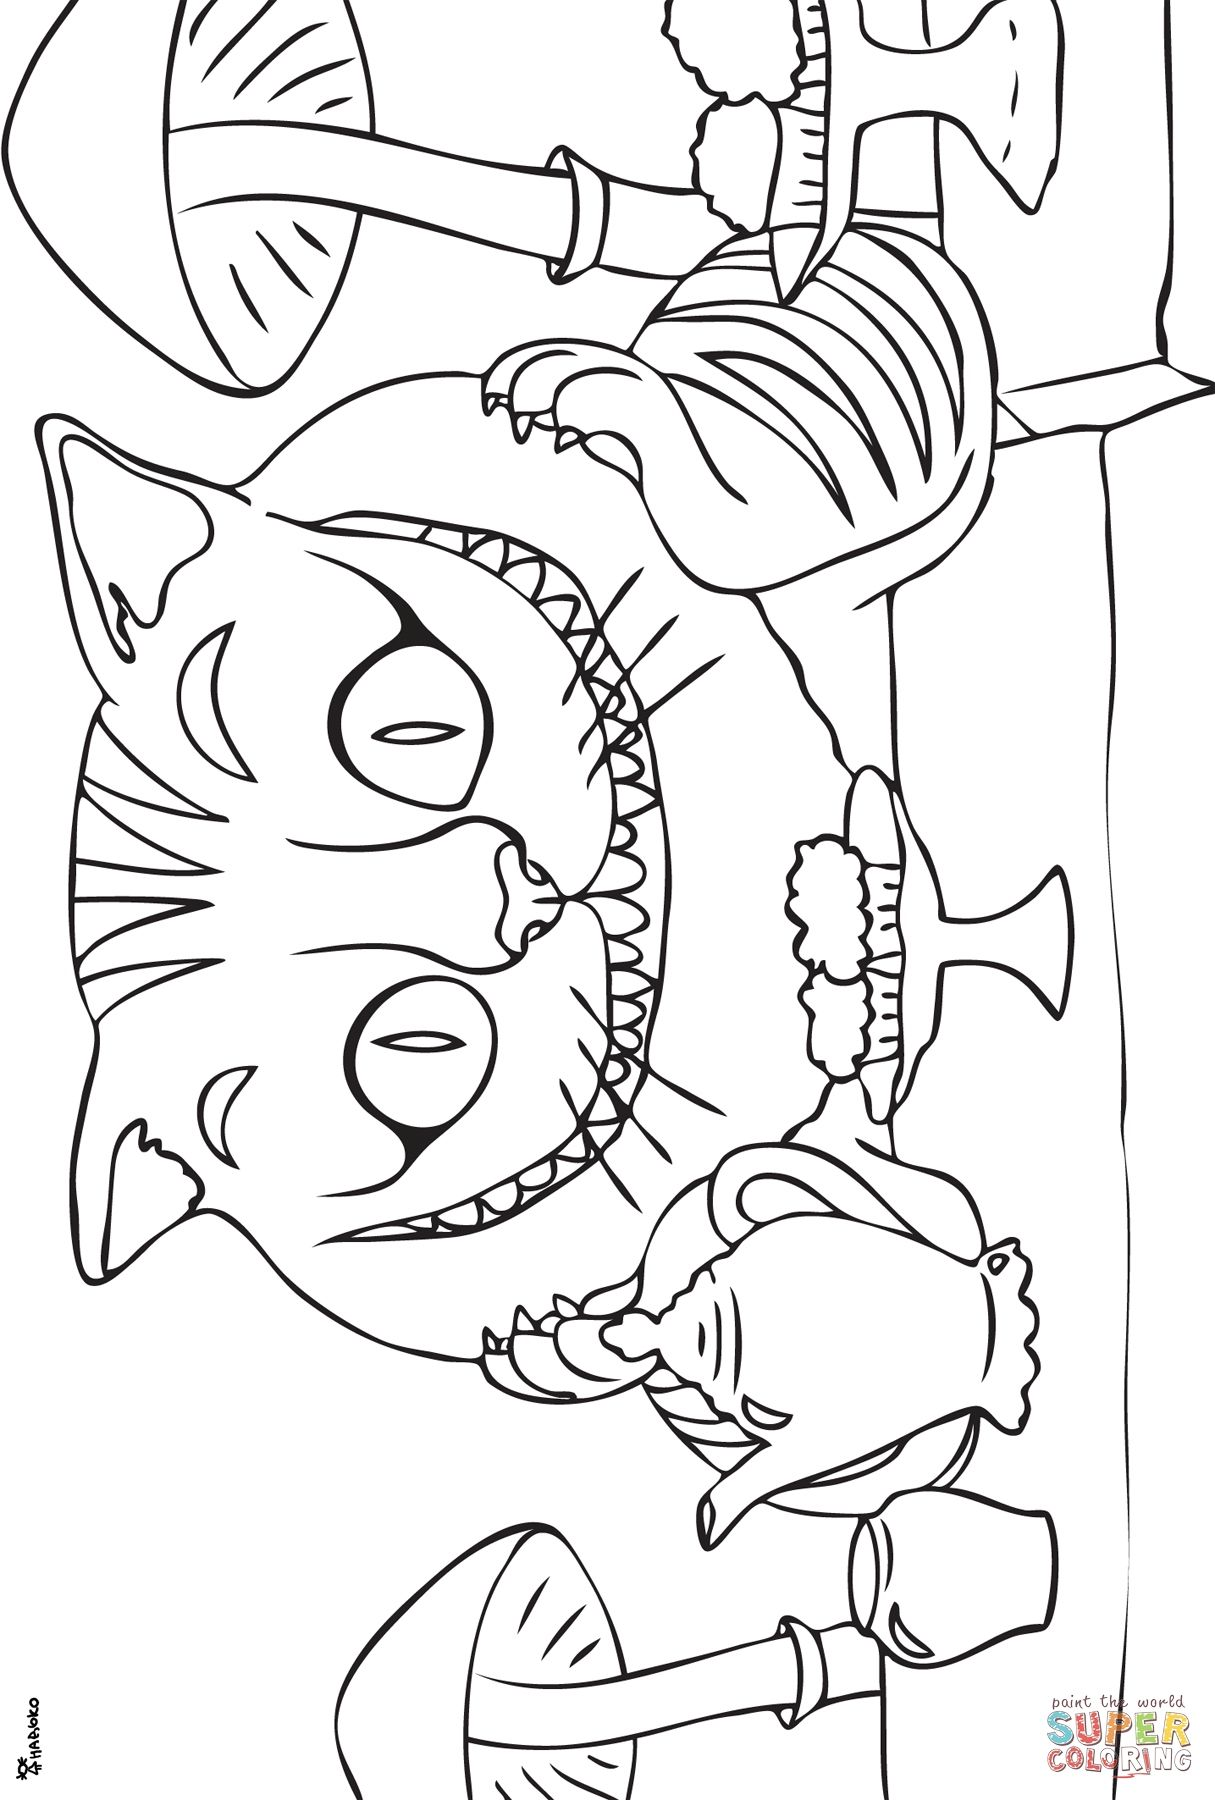 Ausmalbilder Susi Und Strolch Katzen : Cheshire Cat Coloring Page Free Printable Coloring Pages Sweet